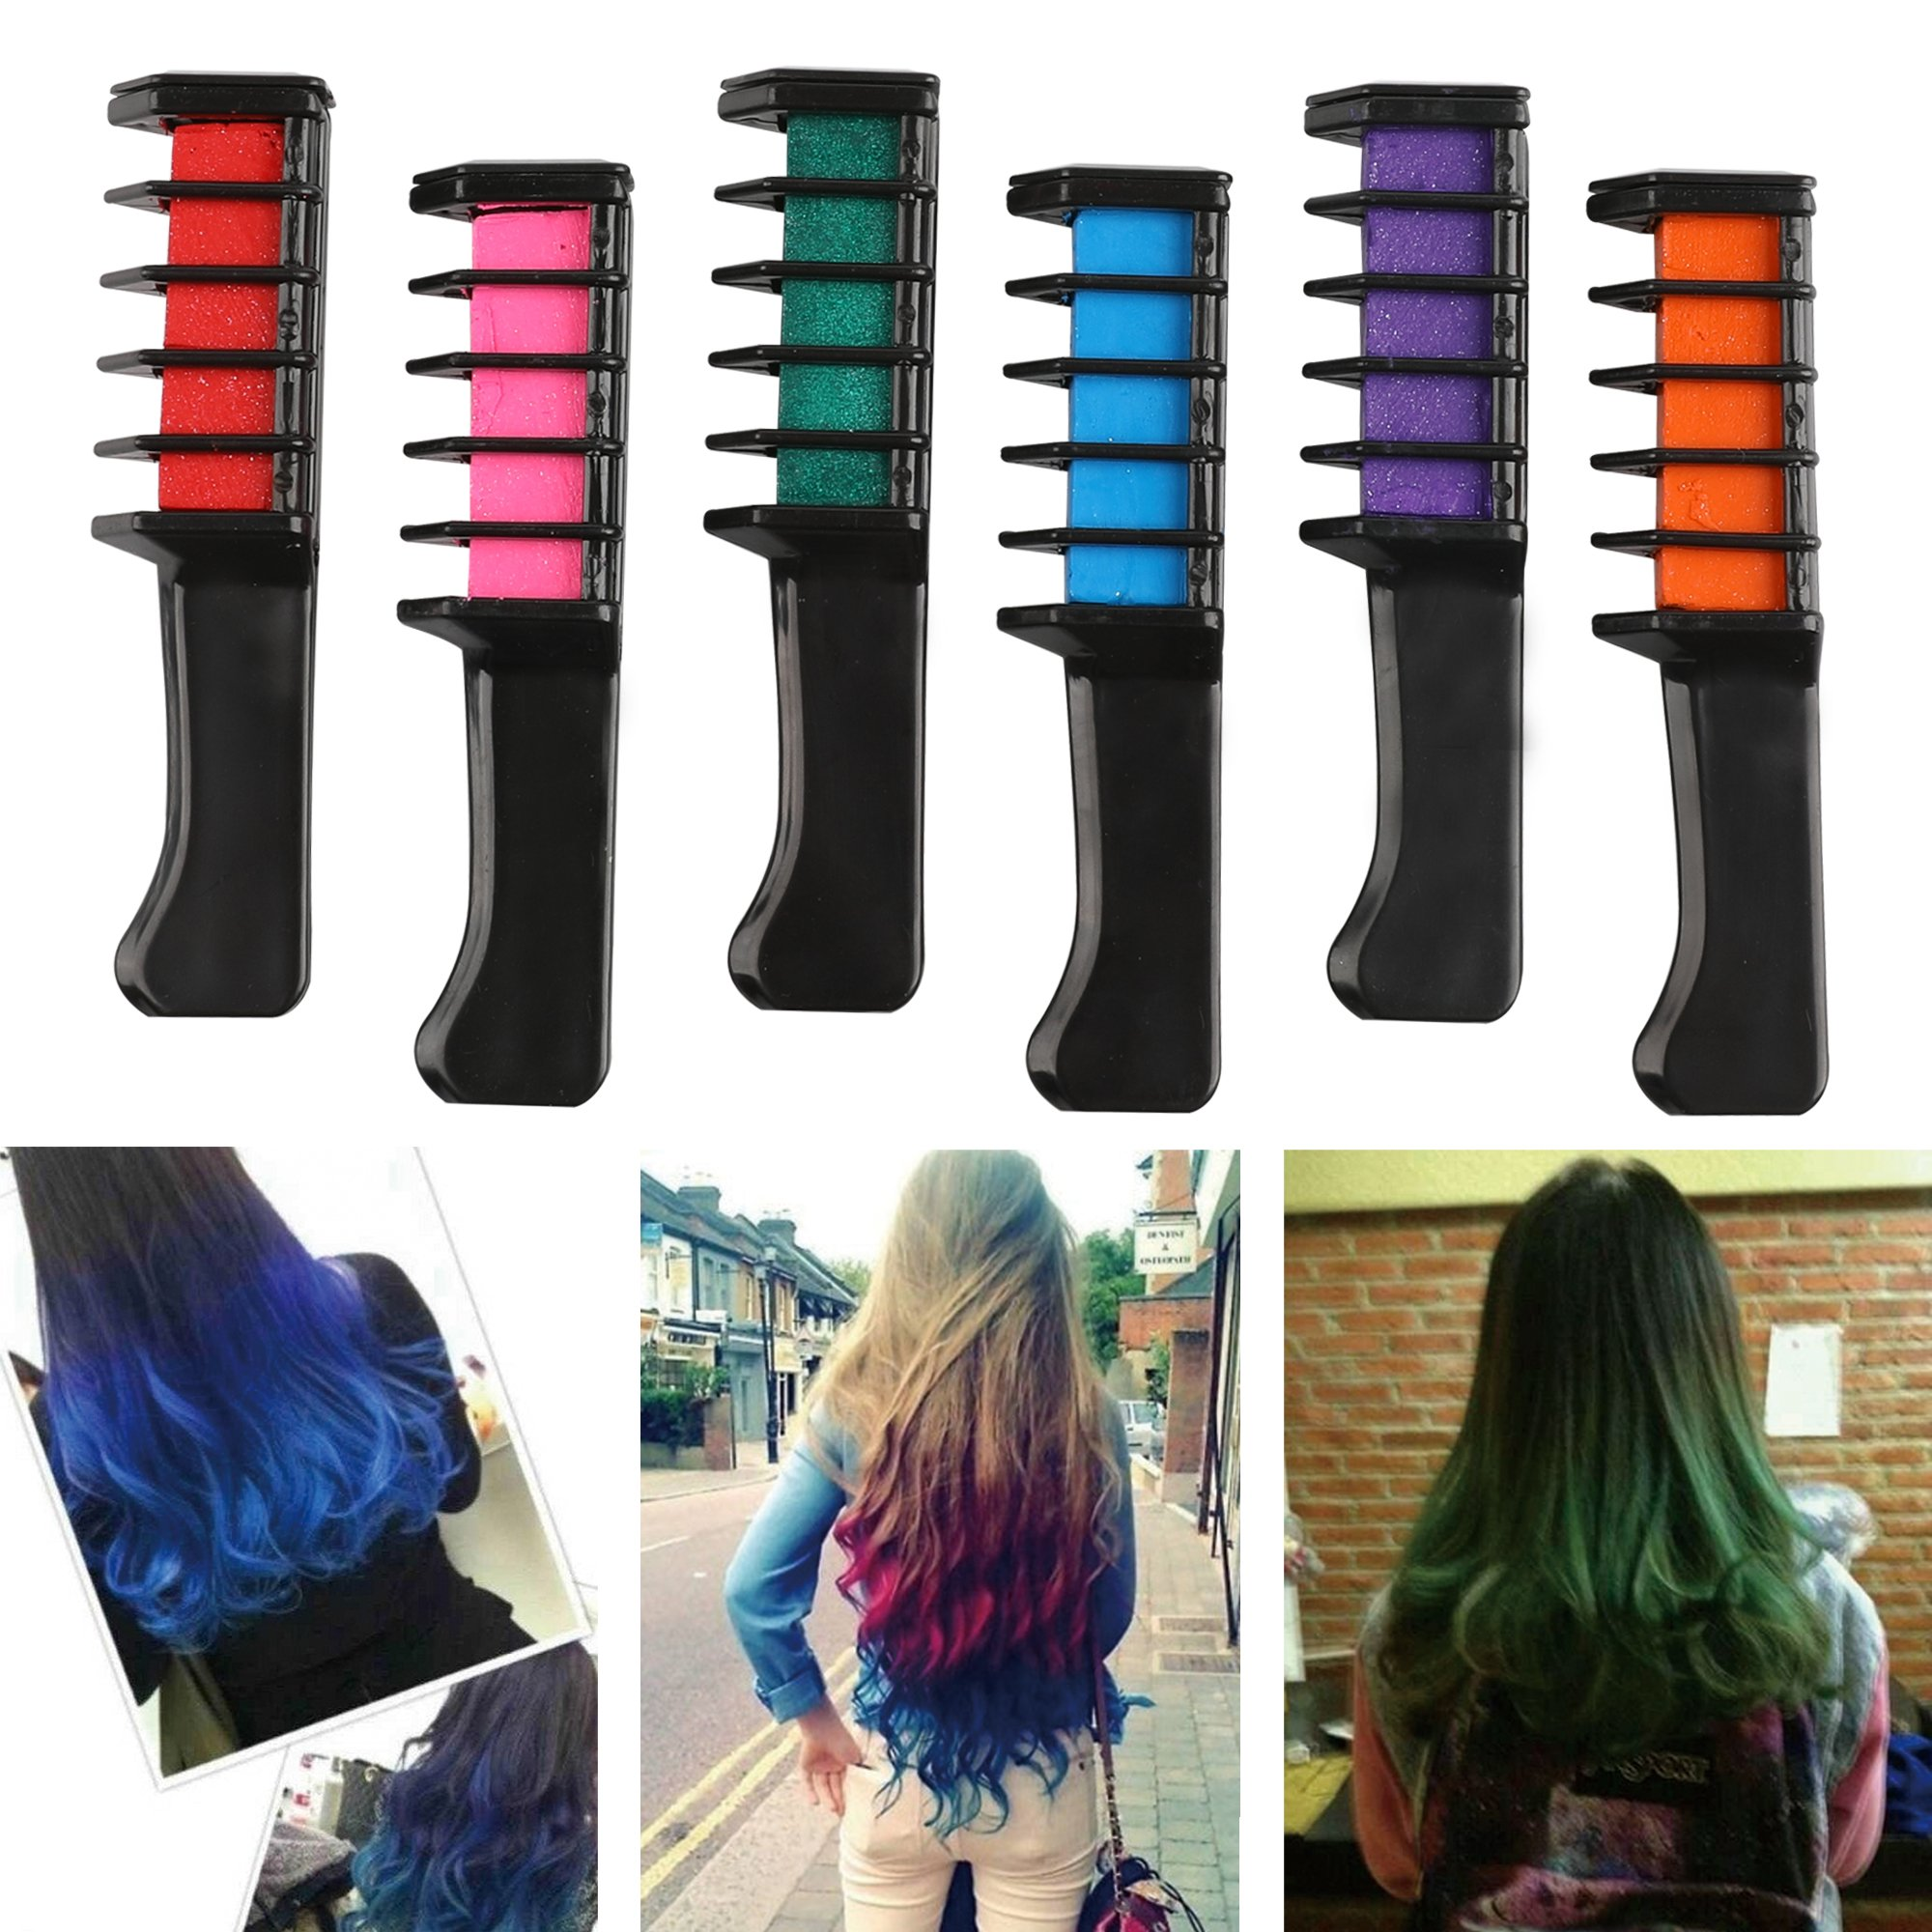 Coolyouth Hair Chalk Comb Set of 6 PCS, Temporary Hair Color Dye for Girls and Boys Dress Up, Party, Cosplay, Festivals, Salon Art DIY Hair Style Highlighting, Easy Dye and Wash Out (6 colors) by Coolyouth